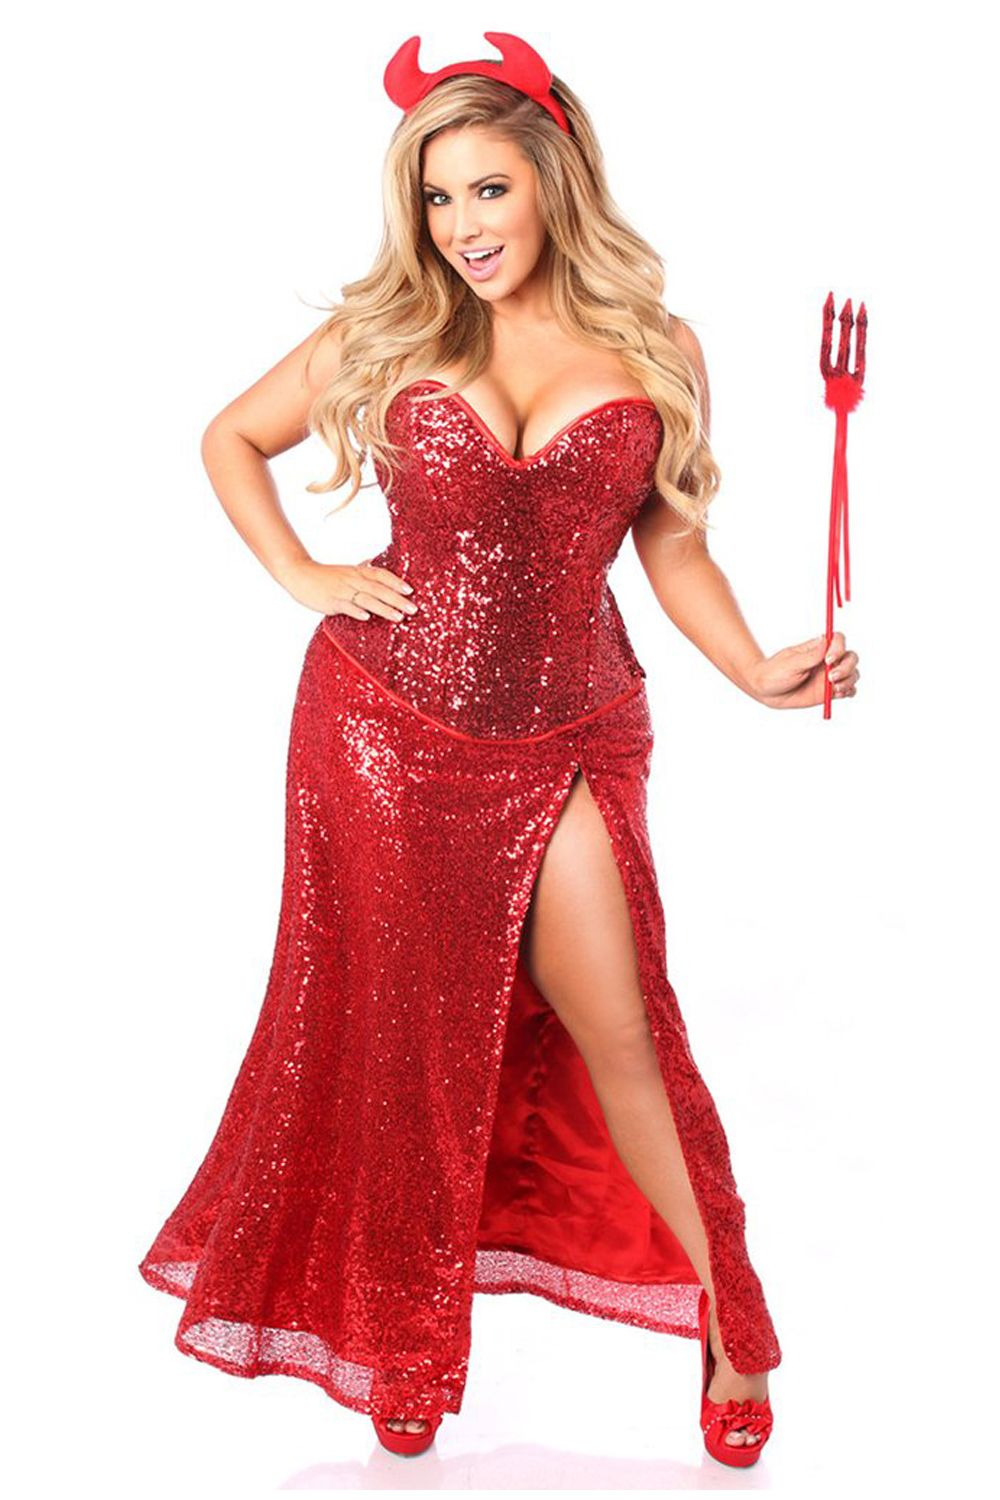 1bfdd38f2a4d4 Devilishly hot in our Top Drawer Premium Red Sequin Devil Costume. Get  yours now